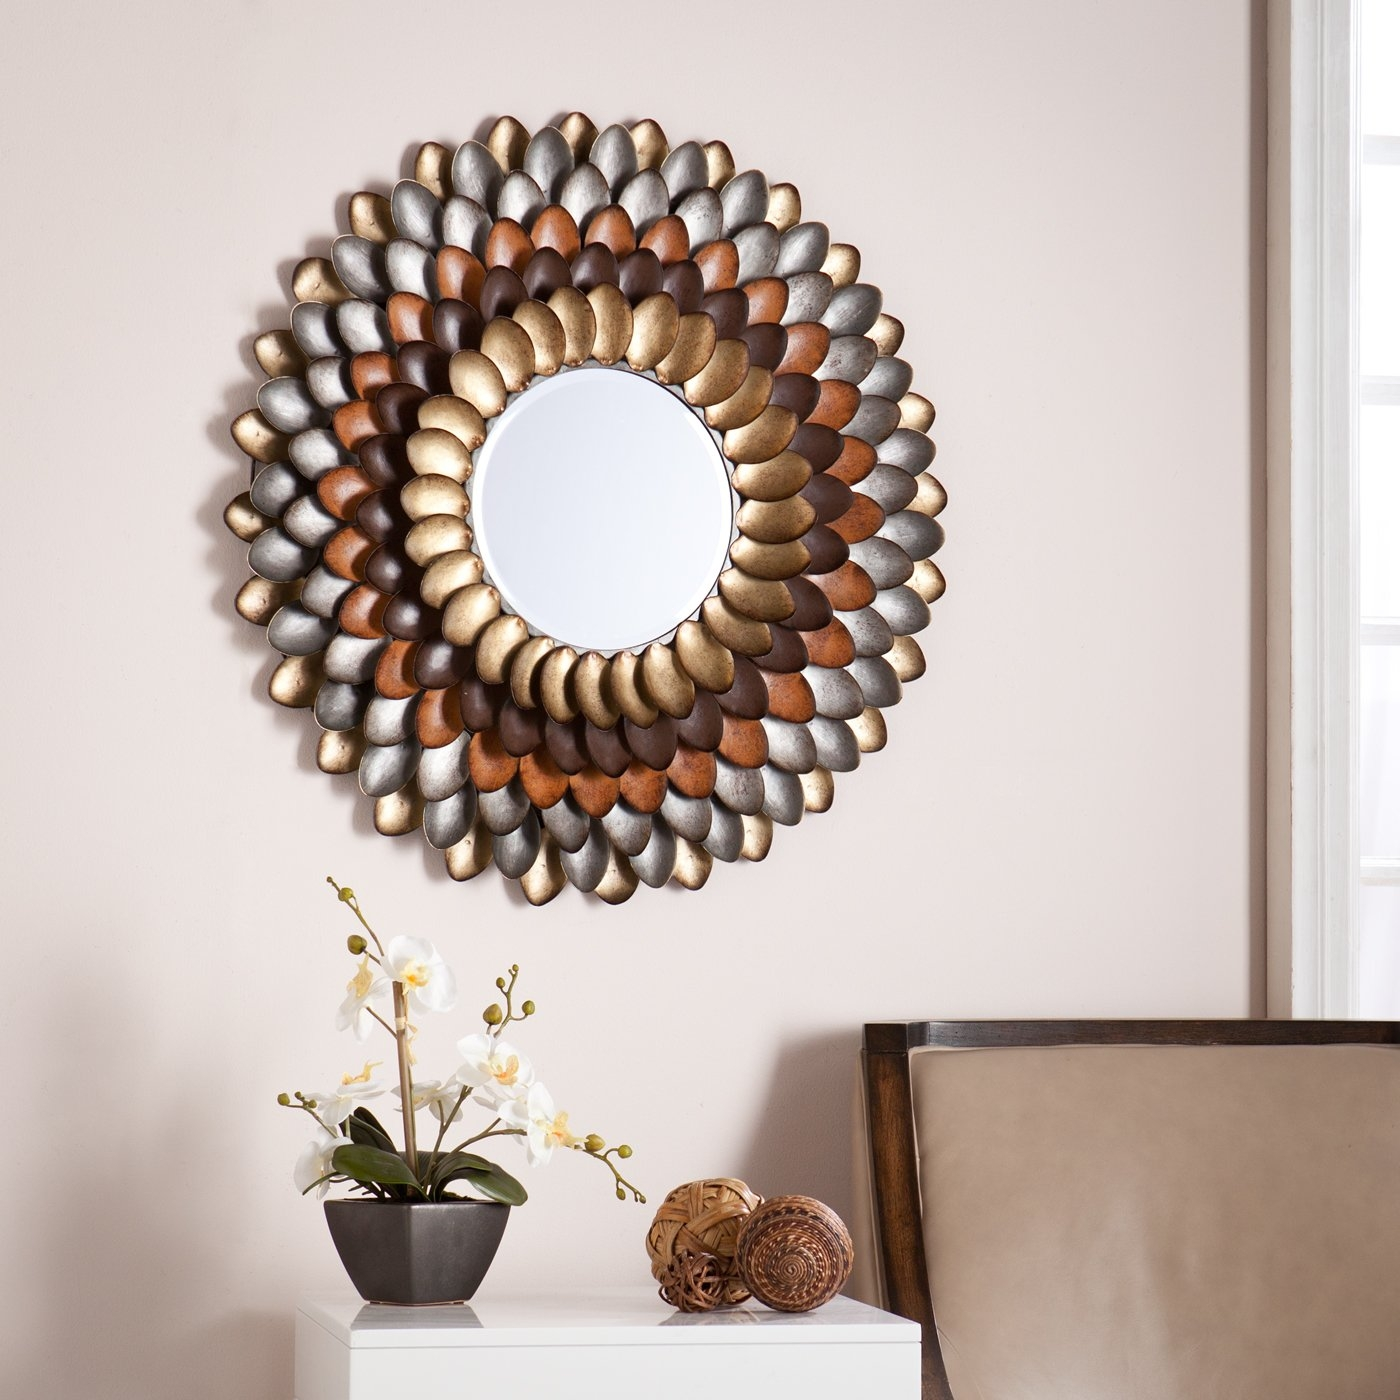 Red Barrel Studio Decorative Round Wall Mirror Reviews Wayfair Within Red Wall Mirrors (Image 13 of 15)